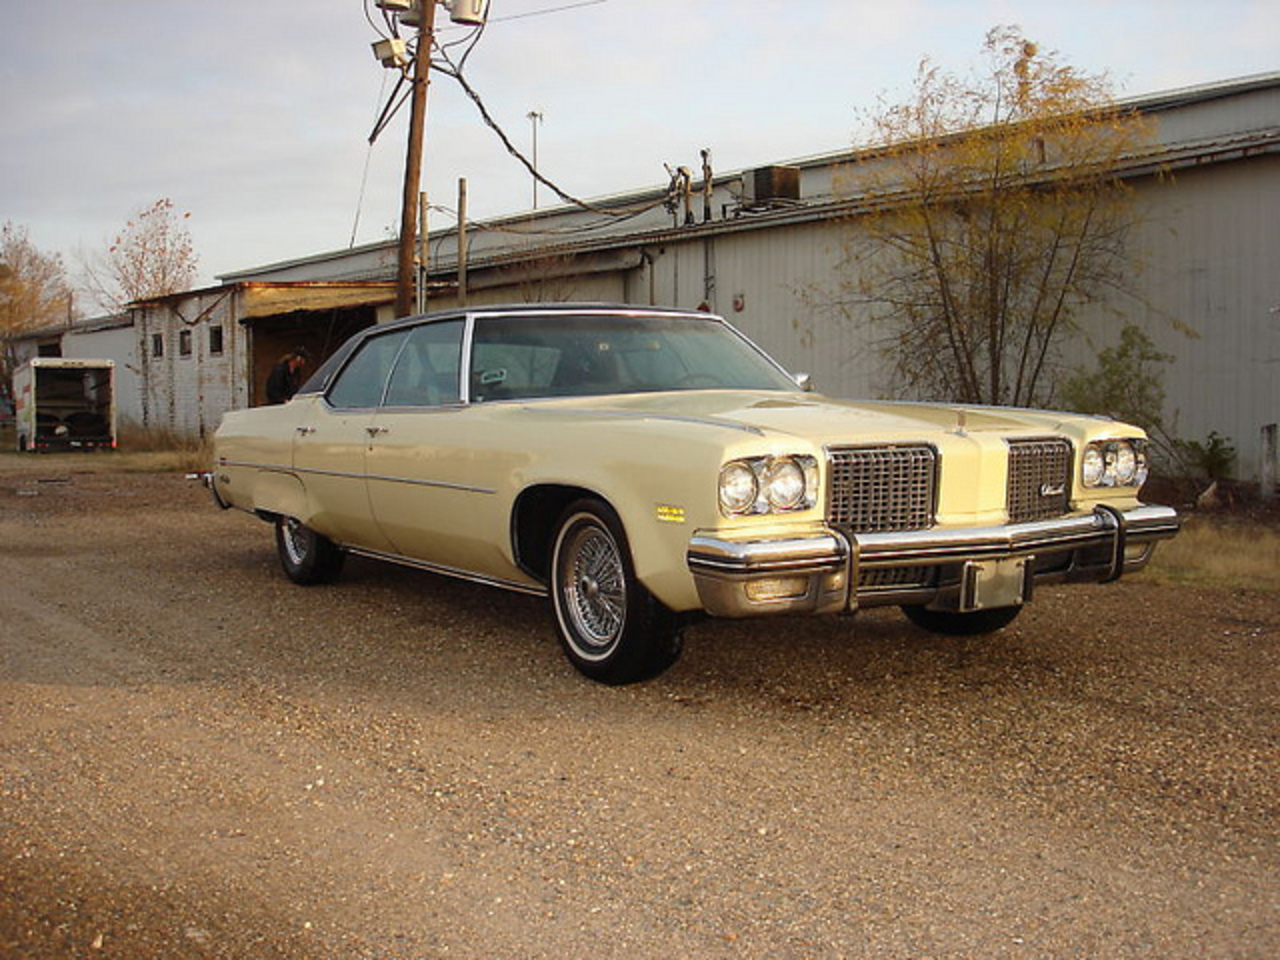 1974 Oldsmobile 98 sedan | Flickr - Photo Sharing!